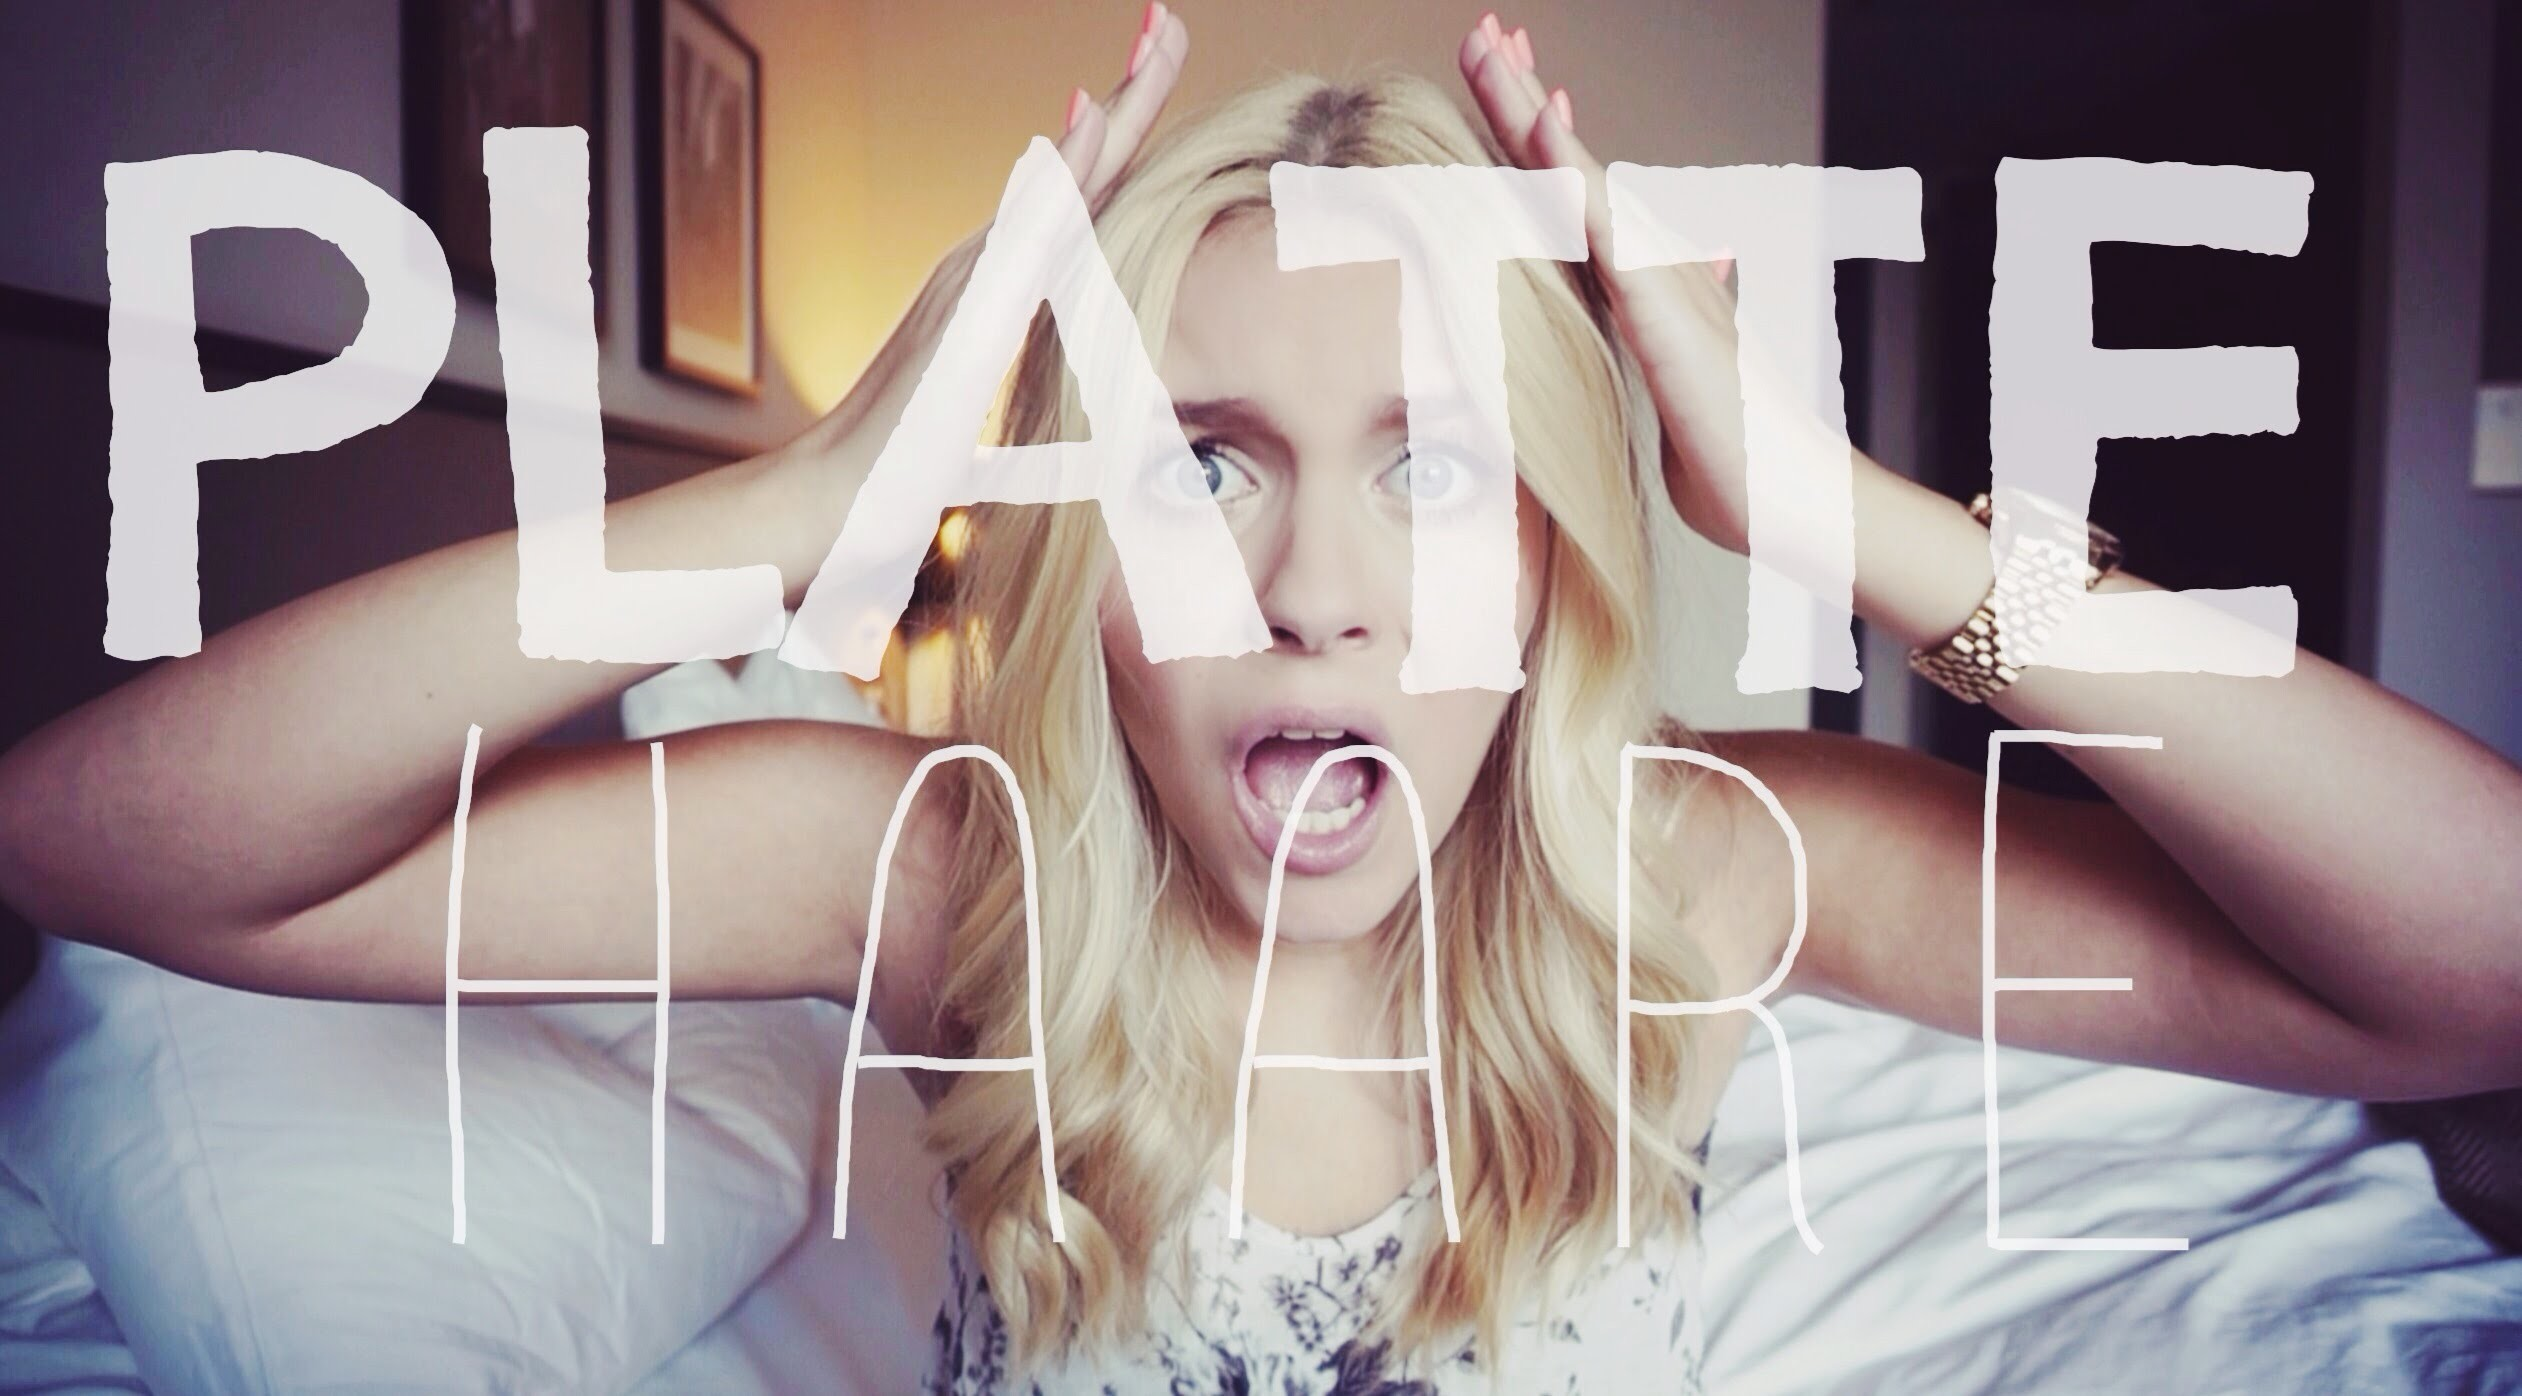 Problem : PLATTE HAARE ♡ CALL OF BEAUTY ♡ | Dagi Bee